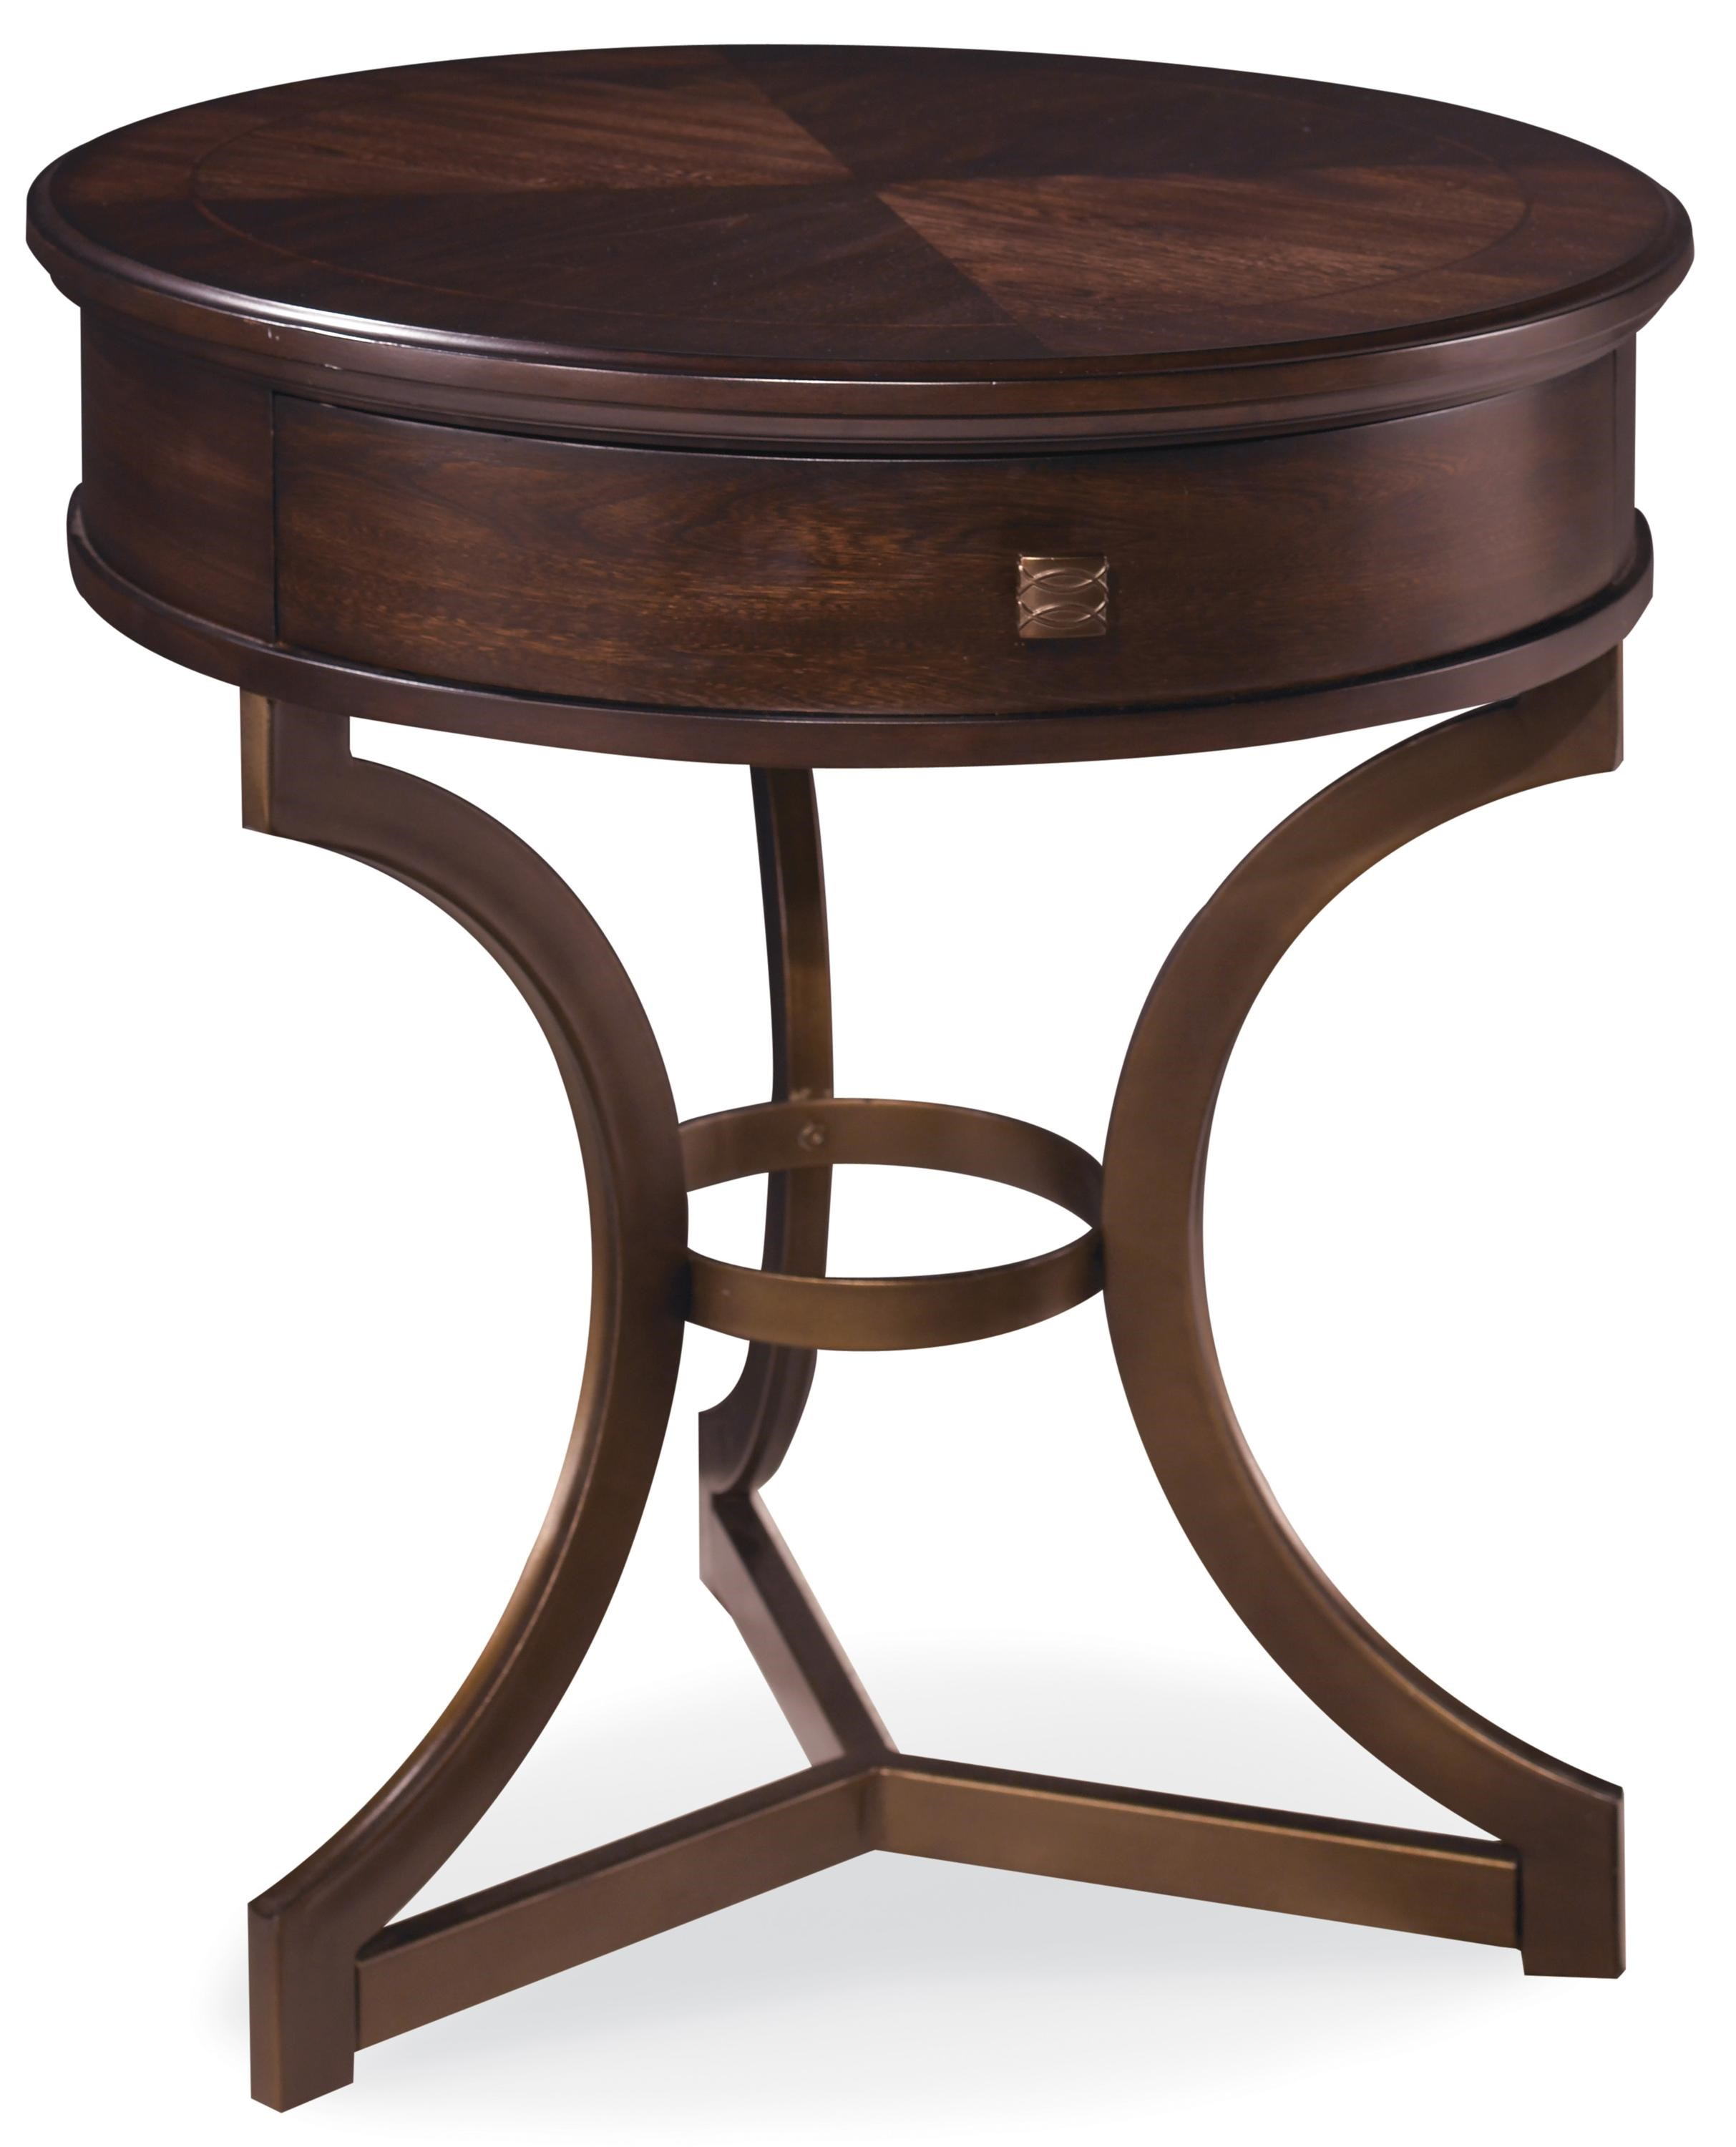 Markor Furniture Intrigue Round End Table With Curved Metal Legs